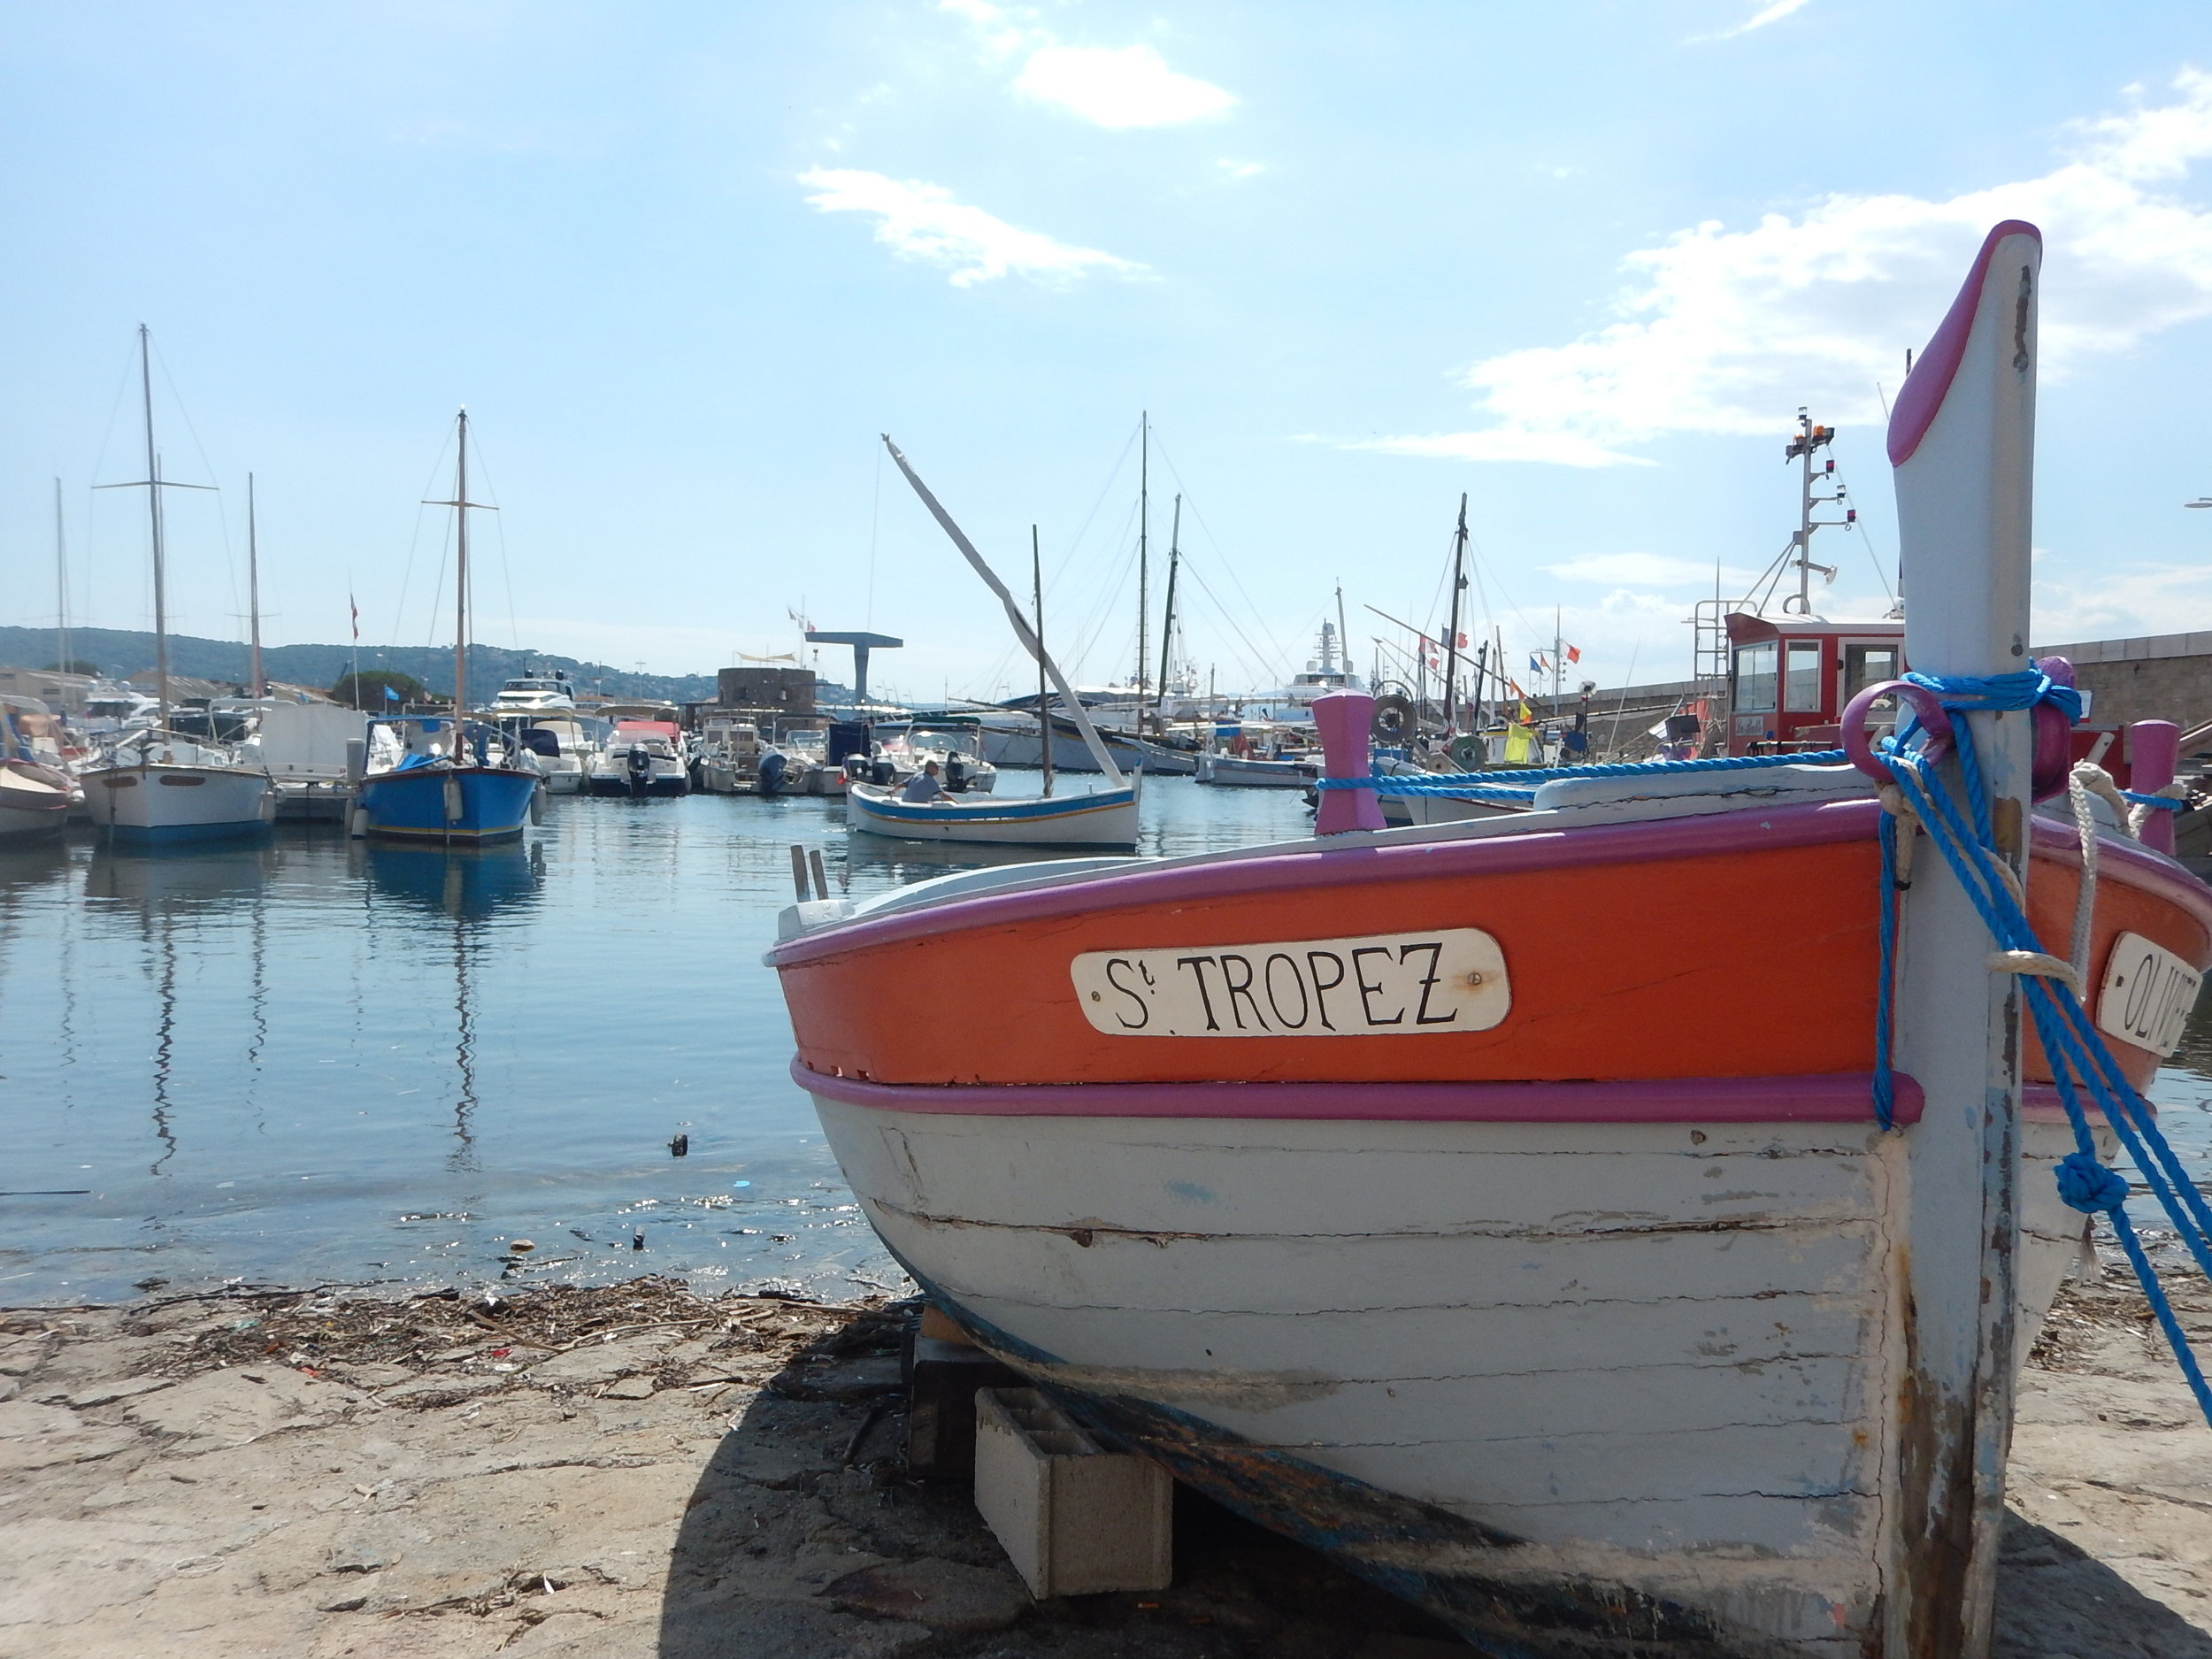 I love this photo. I was a bit thrilled to find an old wooden boat called St Stopez.